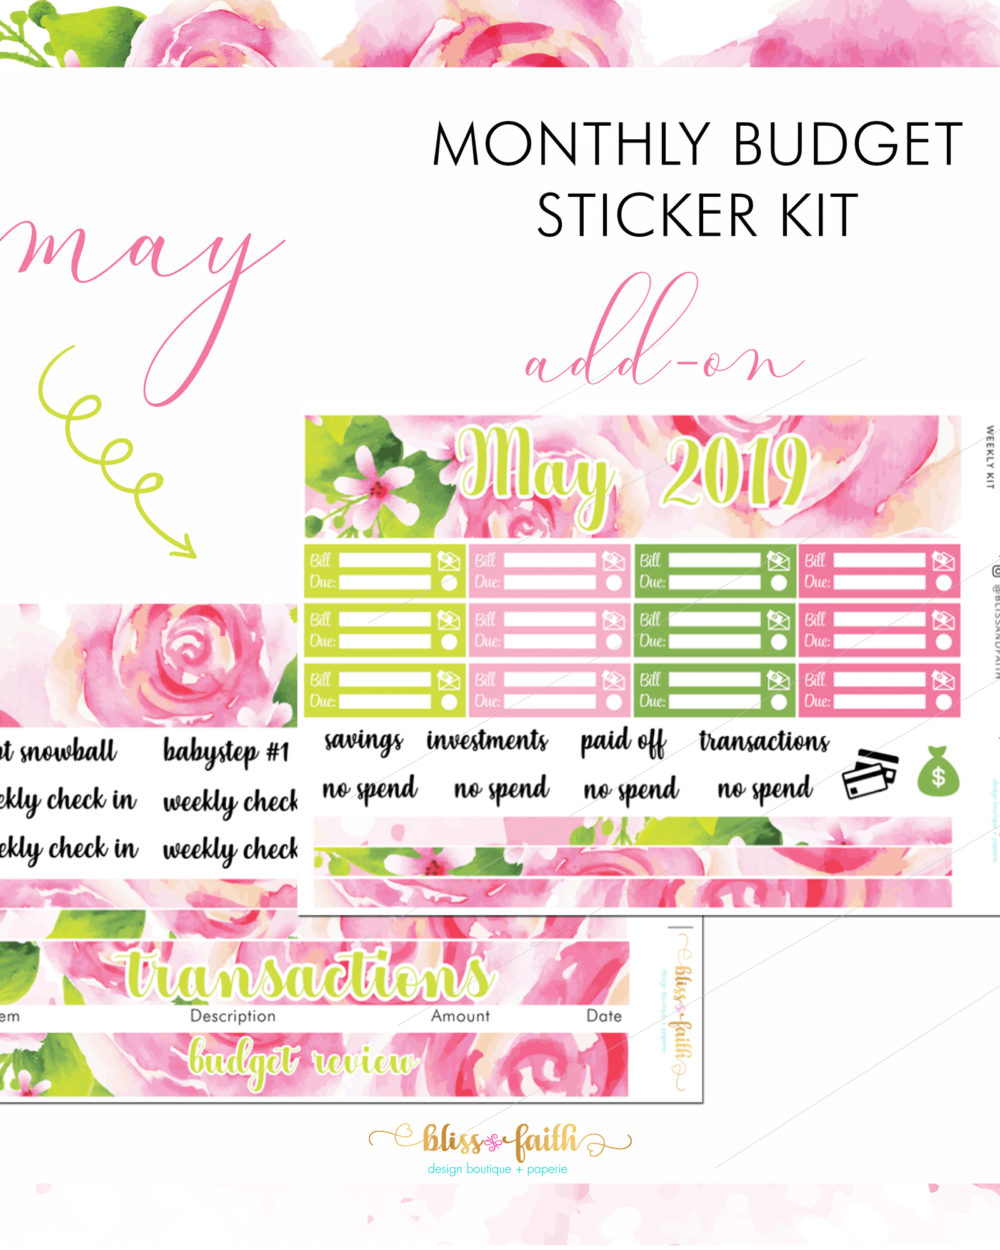 May Monthly Budget Sticker Kit Add-On | BlissandFaith.com